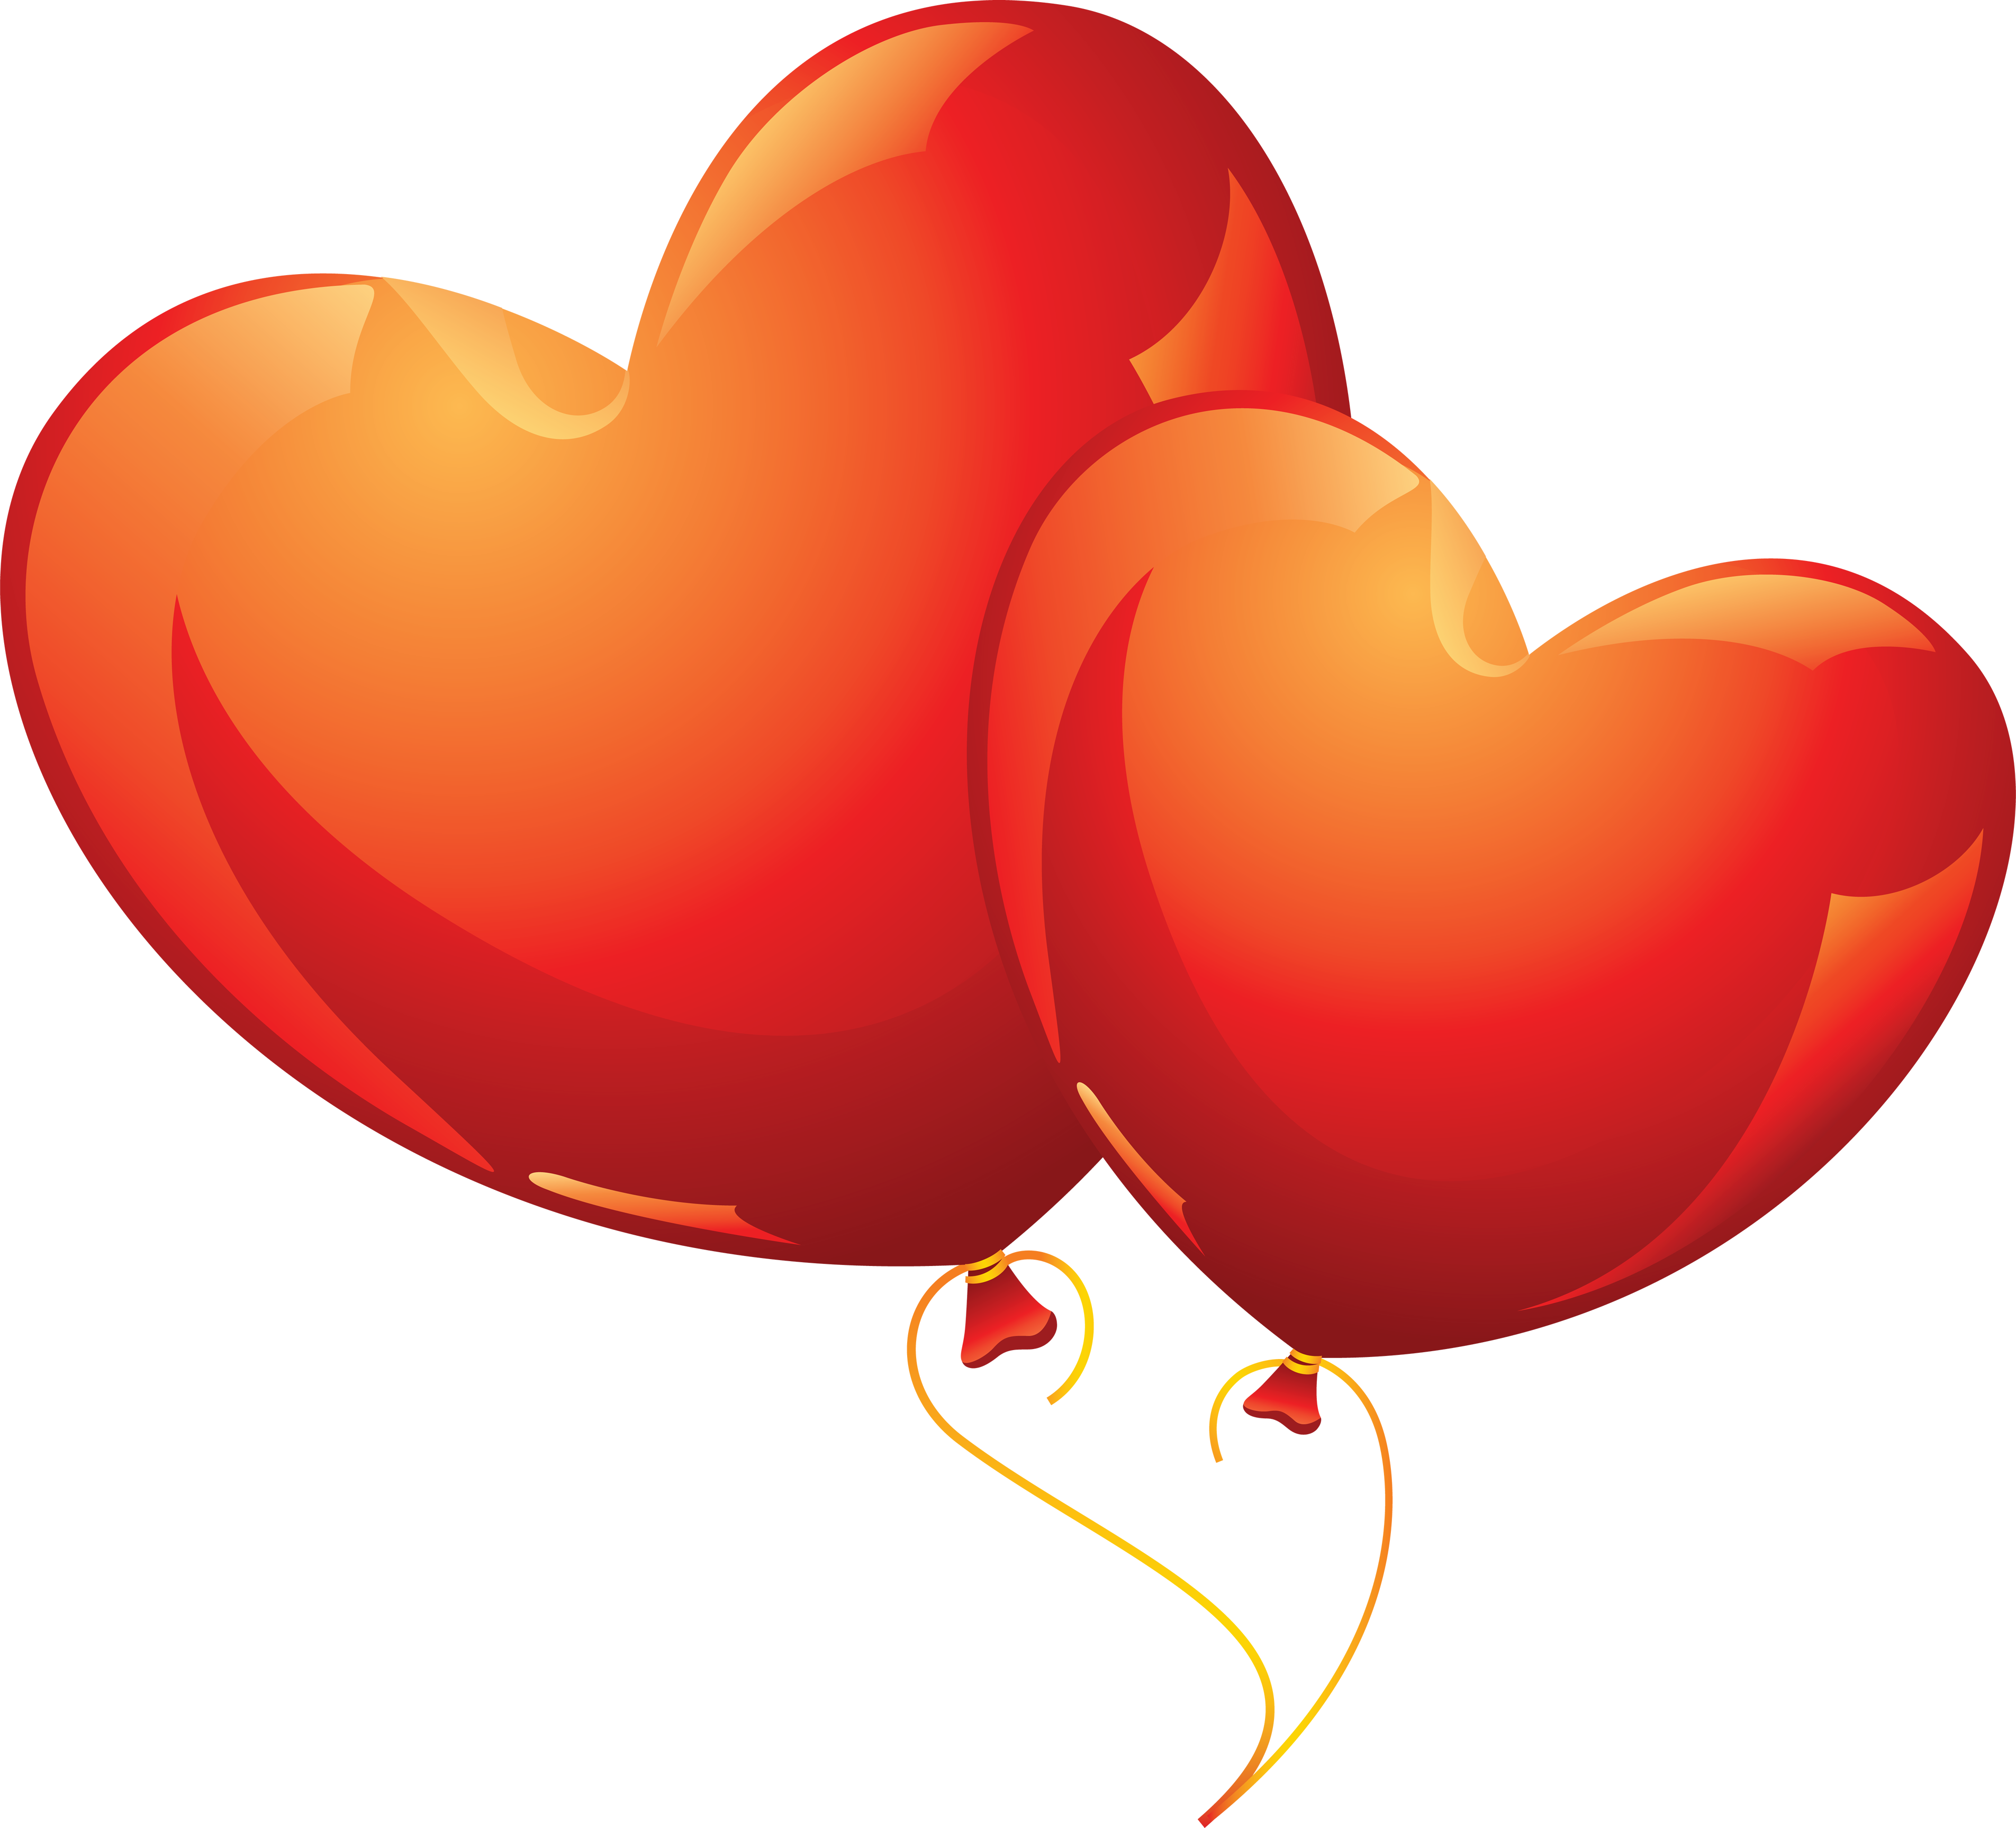 Heart clipart transparent graphic royalty free download Photo Heart Clipart 25 - 10099 - TransparentPNG graphic royalty free download